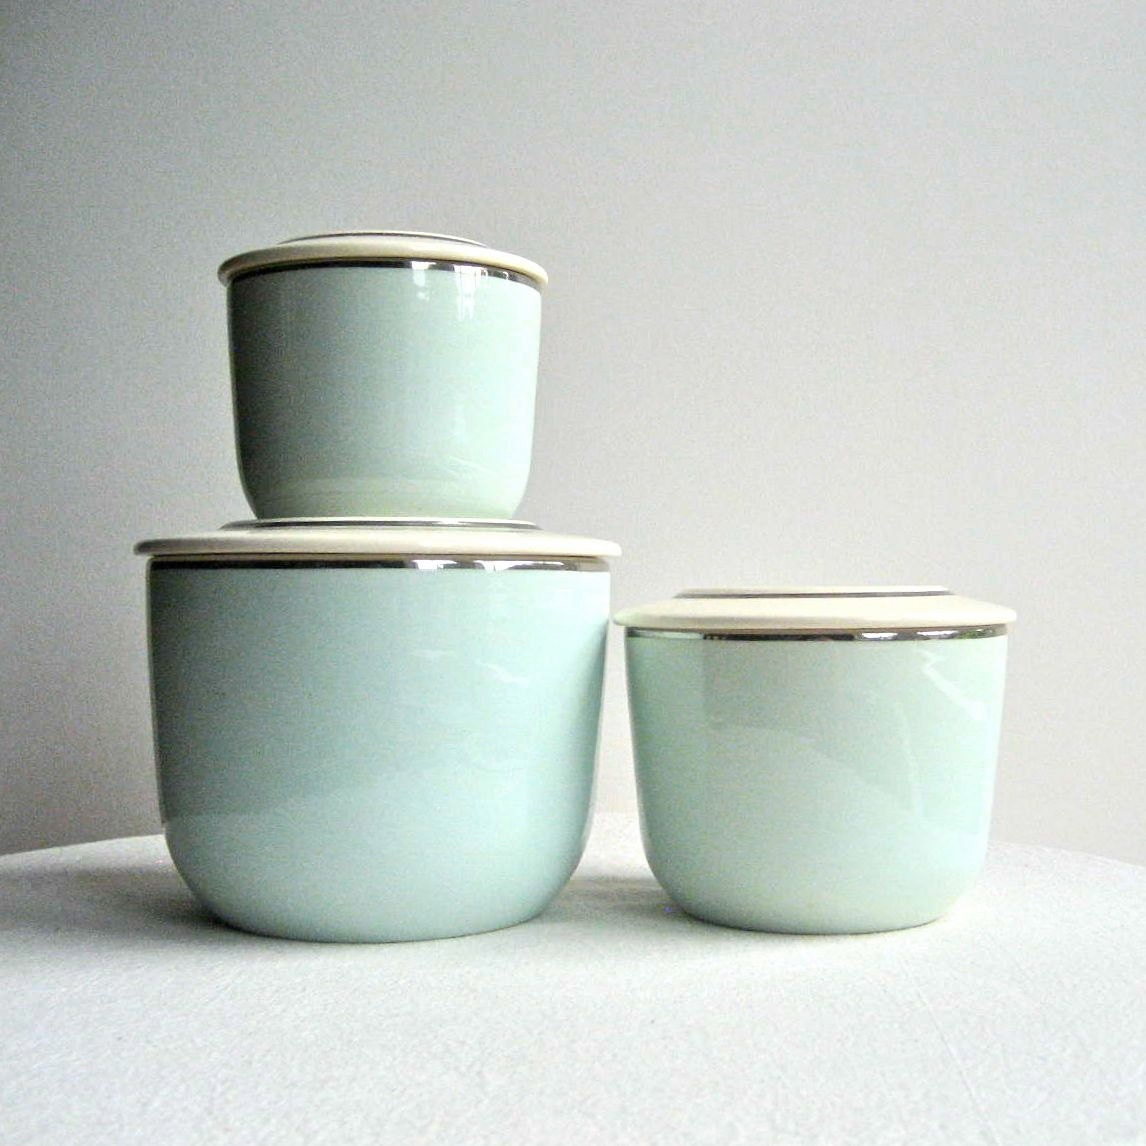 set of three ceramic kitchen canisters ballerina mist in pics photos ceramic kitchen canisters picture